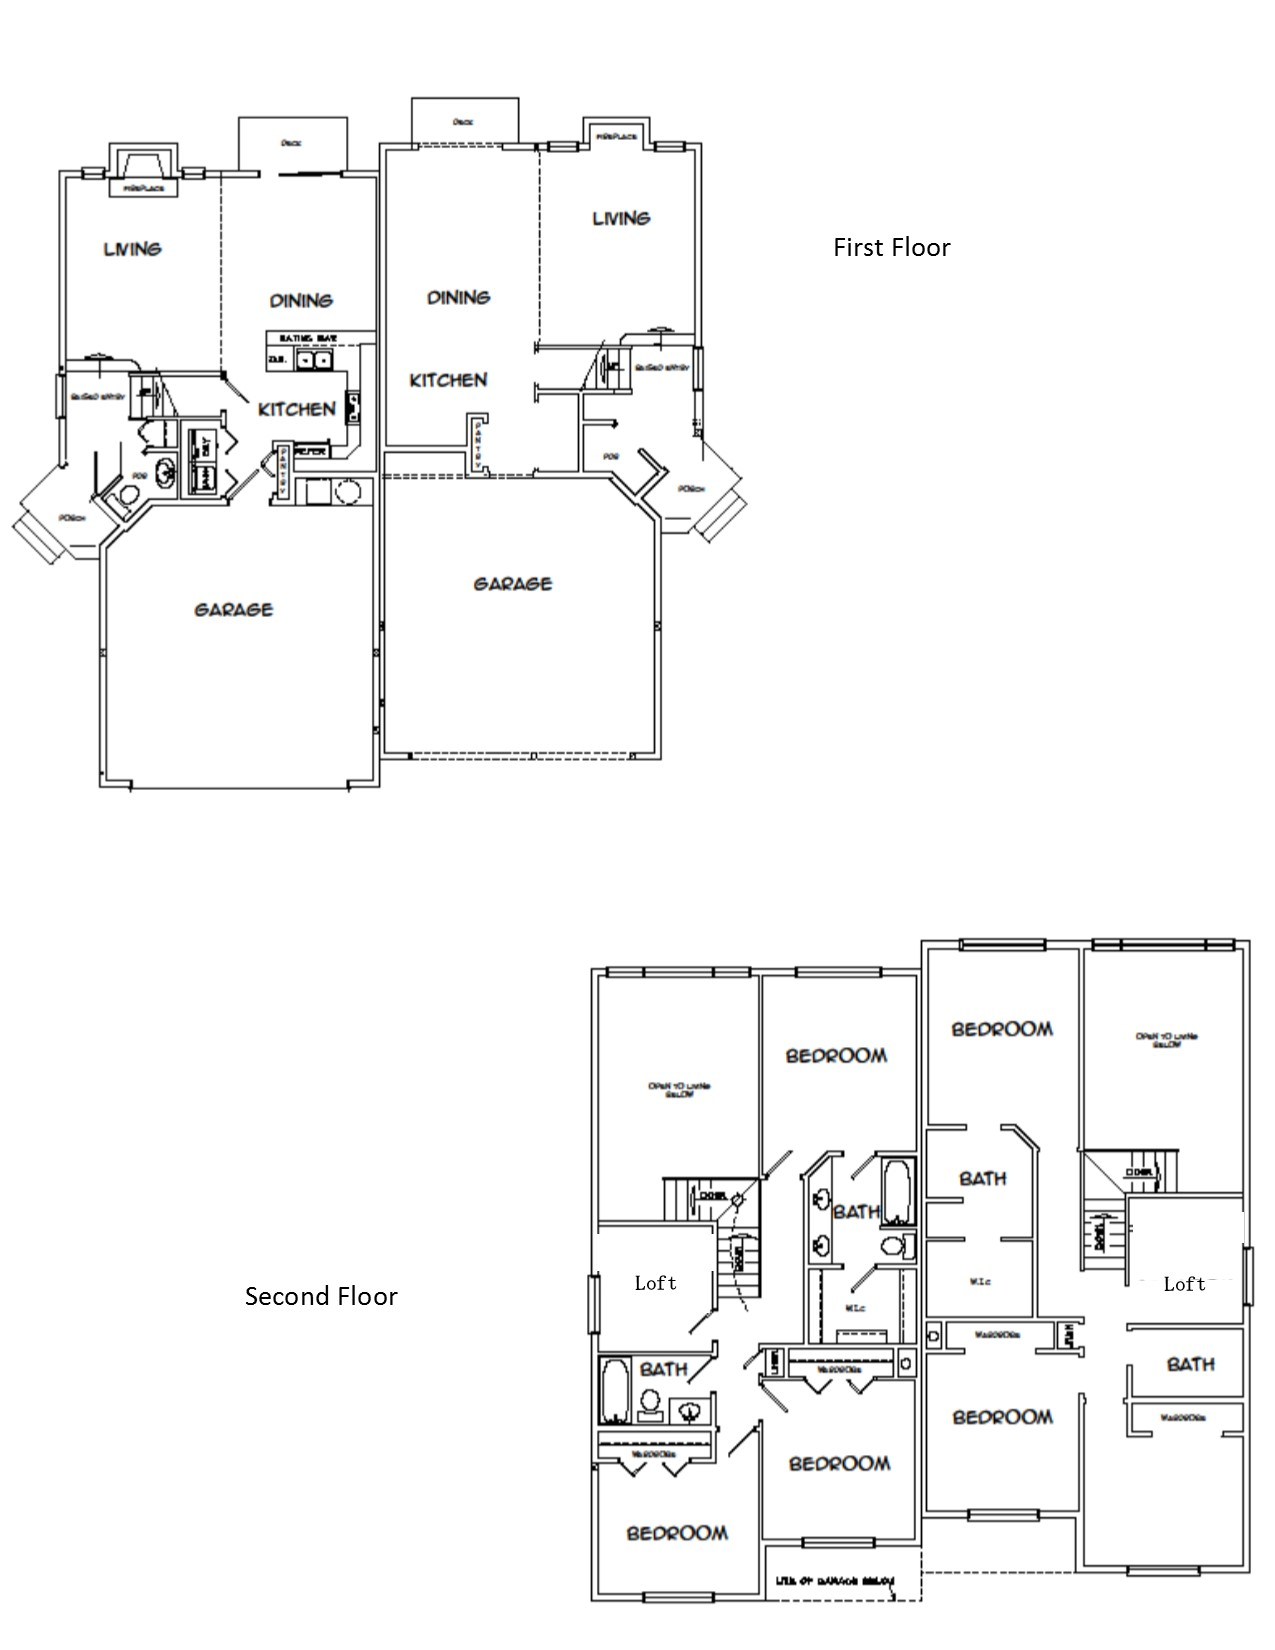 available alaskan homes hultquist homes floorplan liberty